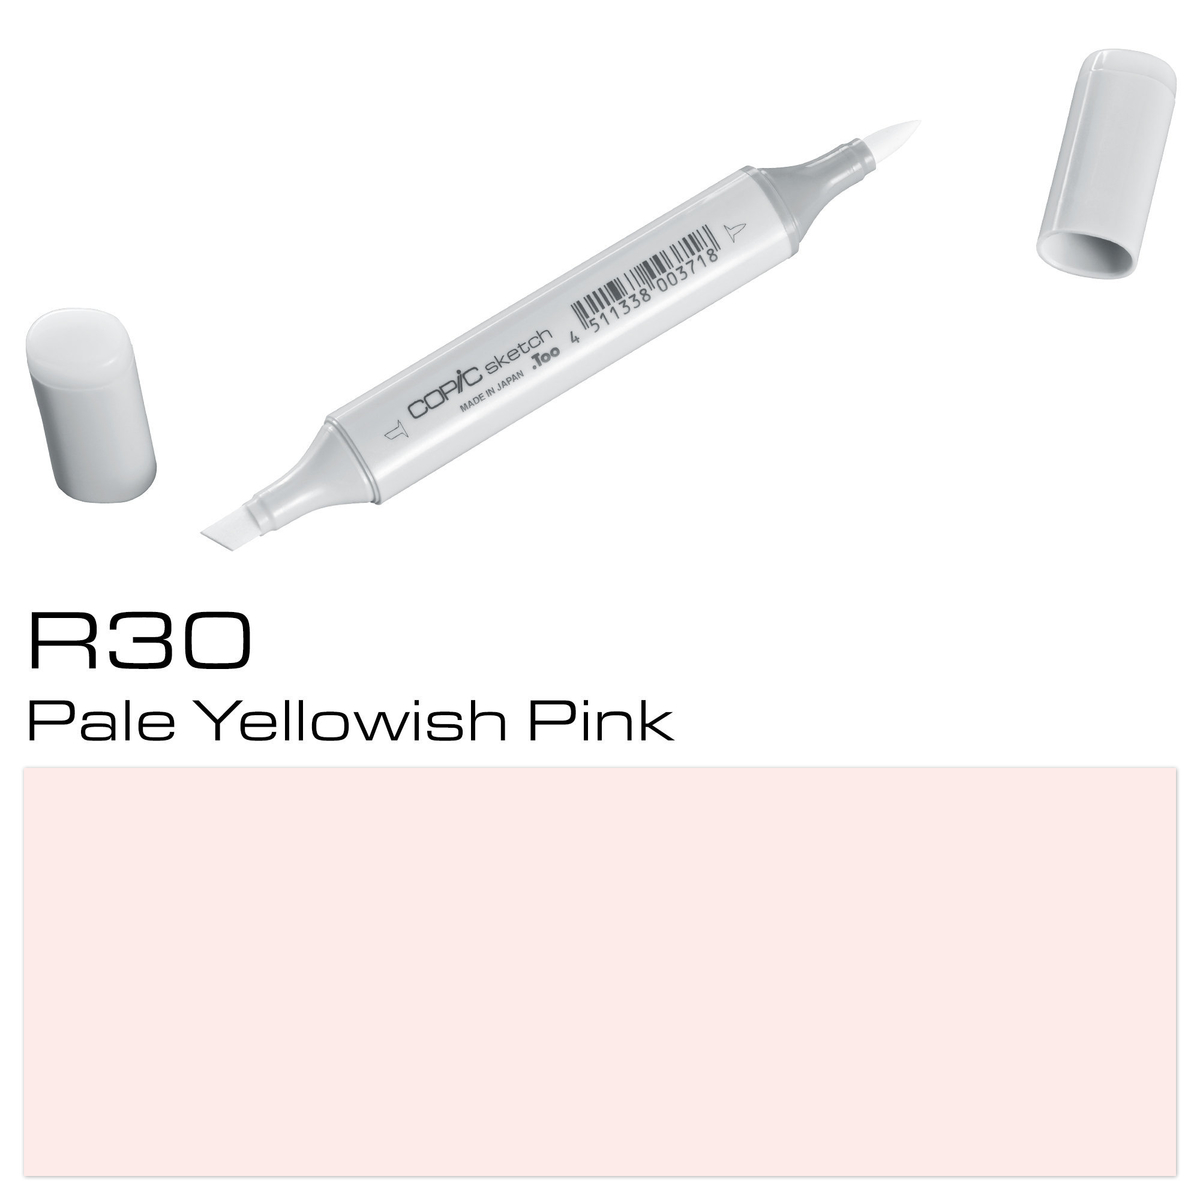 Copic Sketch R 30 pale ye.pink